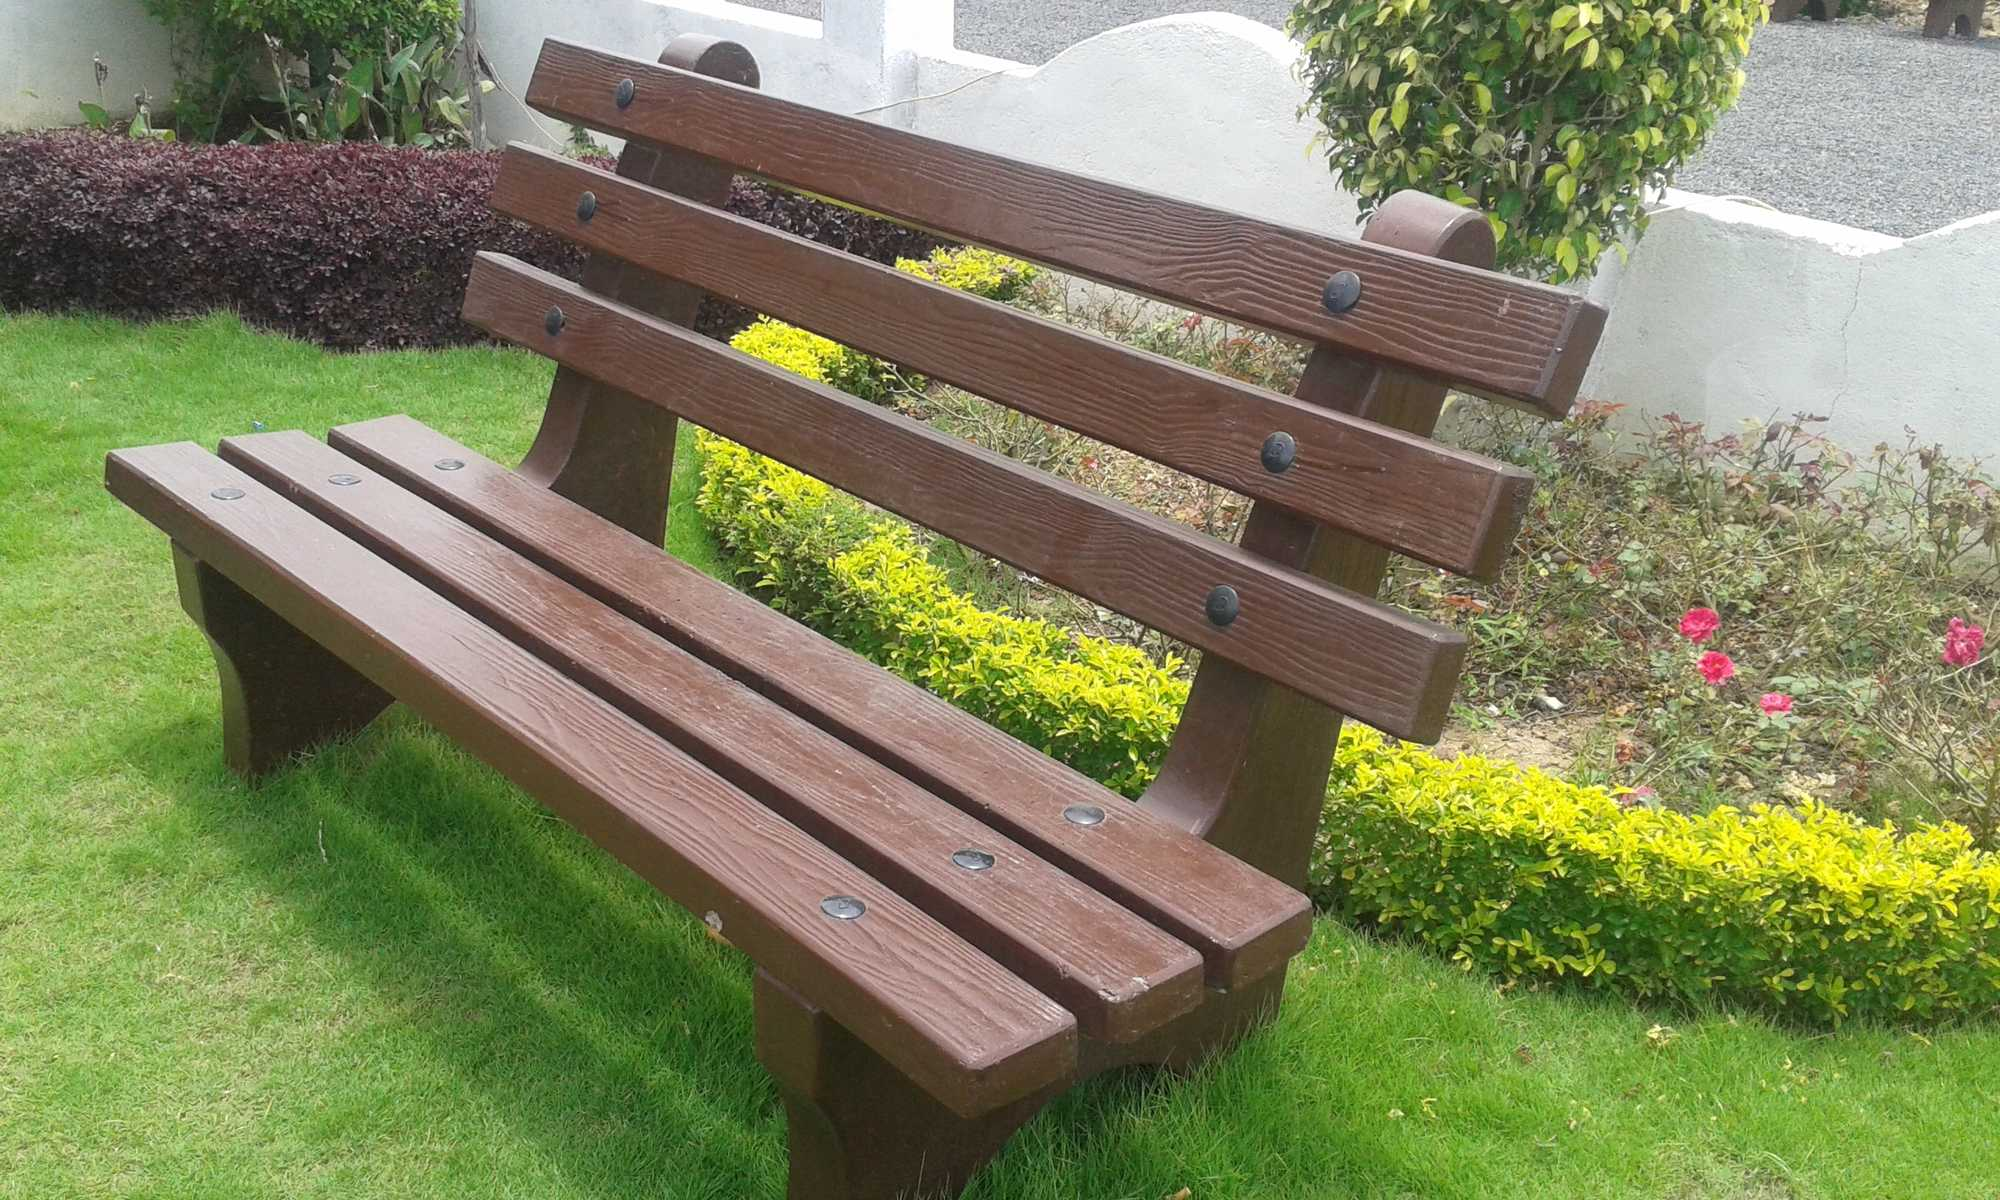 Picture of: Top Stone Garden Bench Manufacturers In Chandlodiya Ahmedabad स ट न ग र डन ब च मन फक चरर स अहमद ब द Justdial